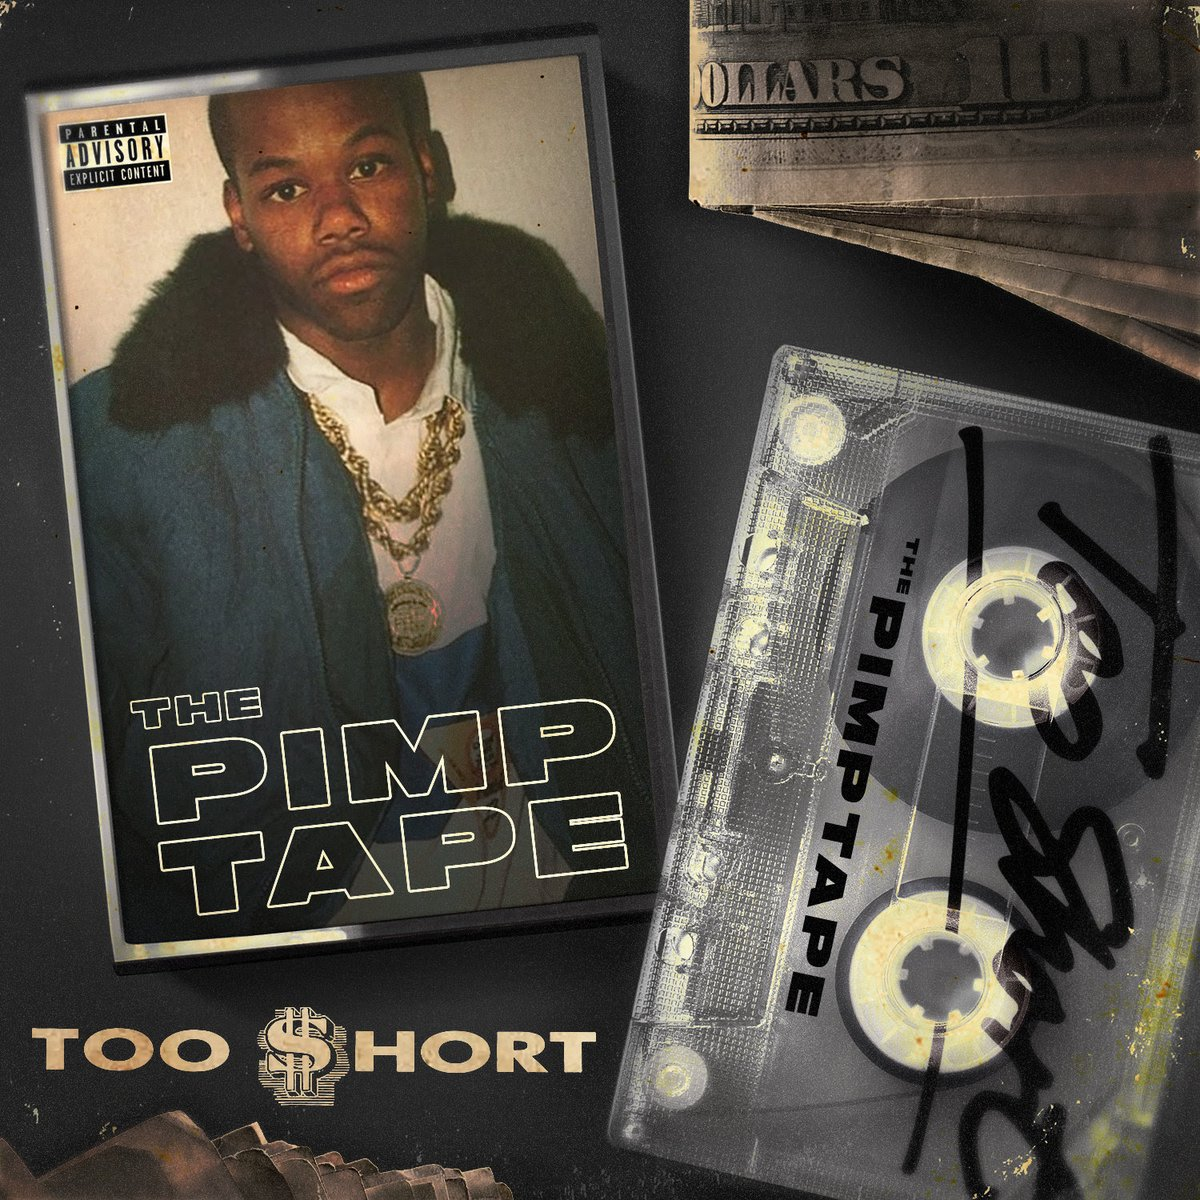 audio review : The Pimp Tape ( album ) ... Too Short